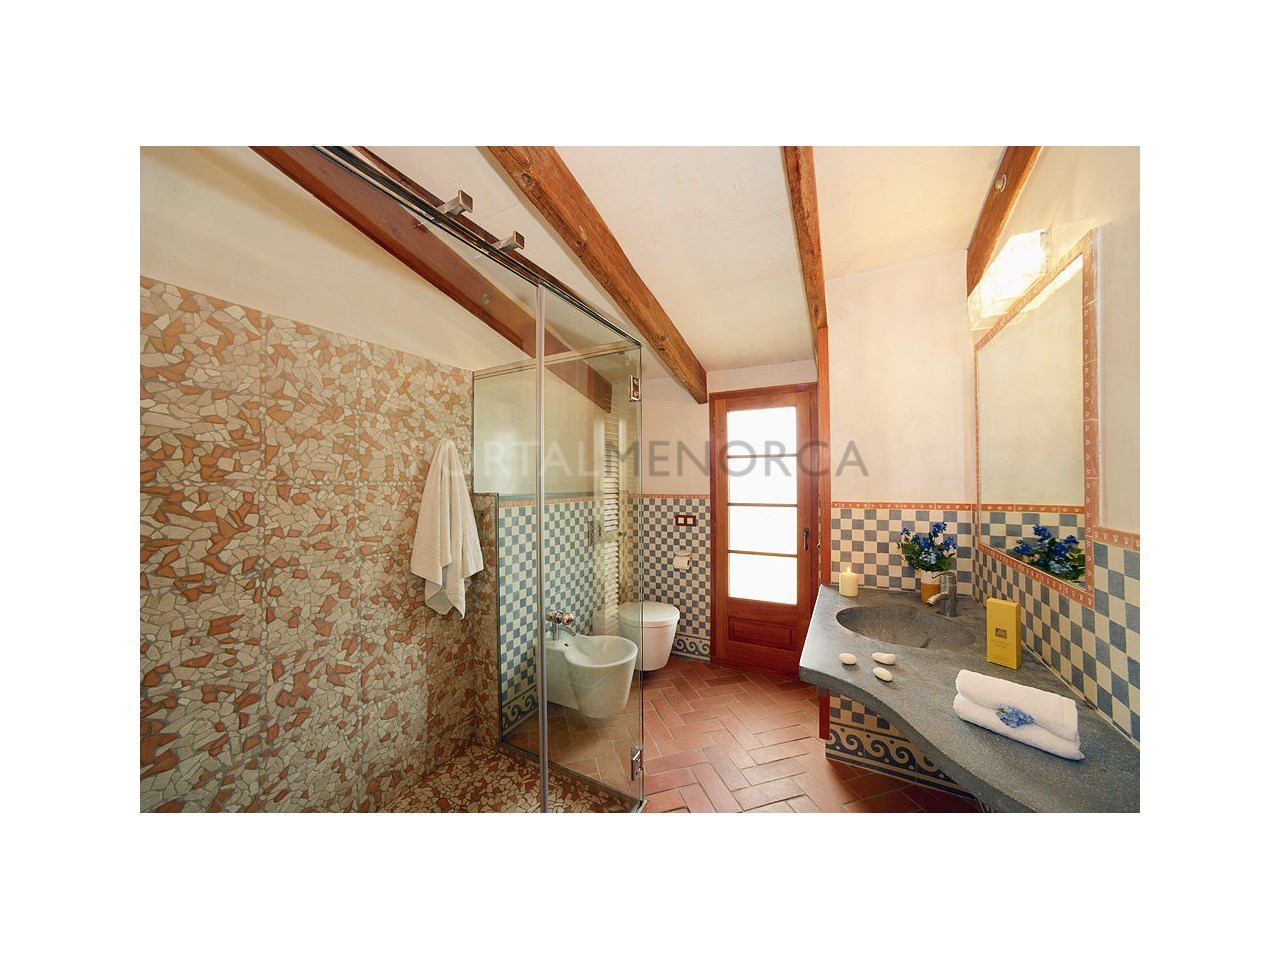 Countryhouse for sale in the Son Morell area-Bathroom